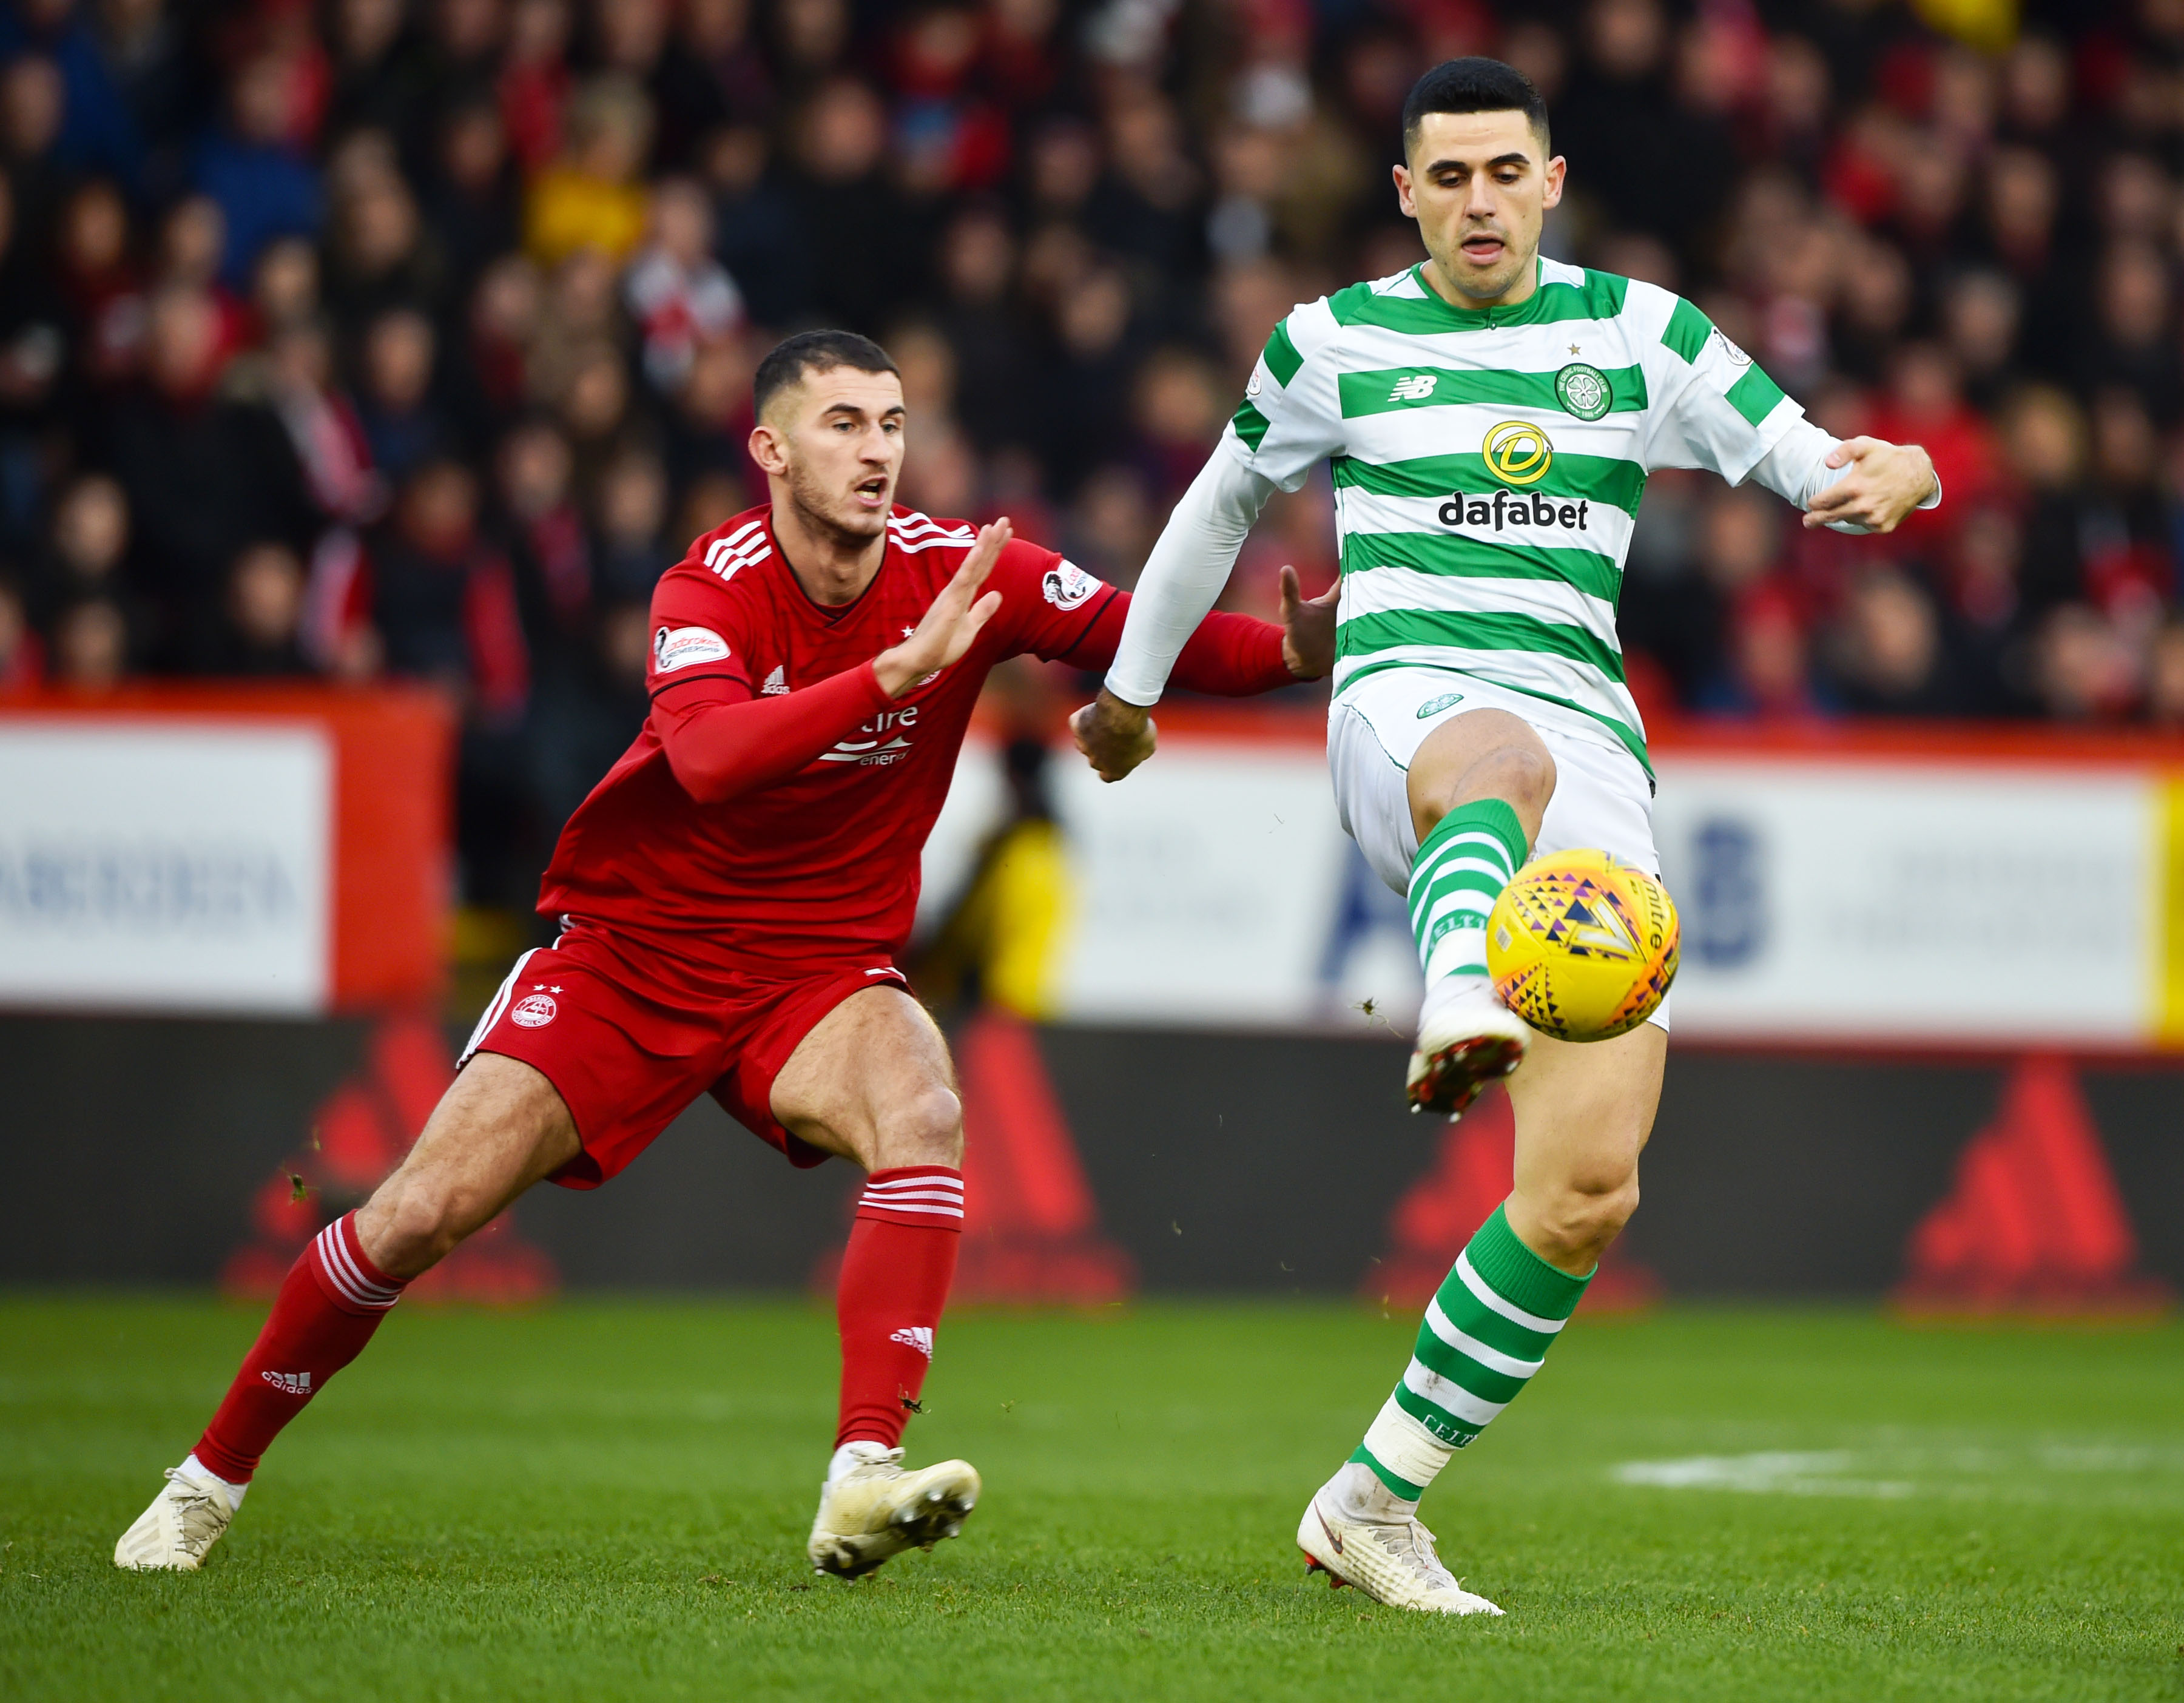 Celtic's Tom Rogic, right, in action with Aberdeen's Dominic Ball.